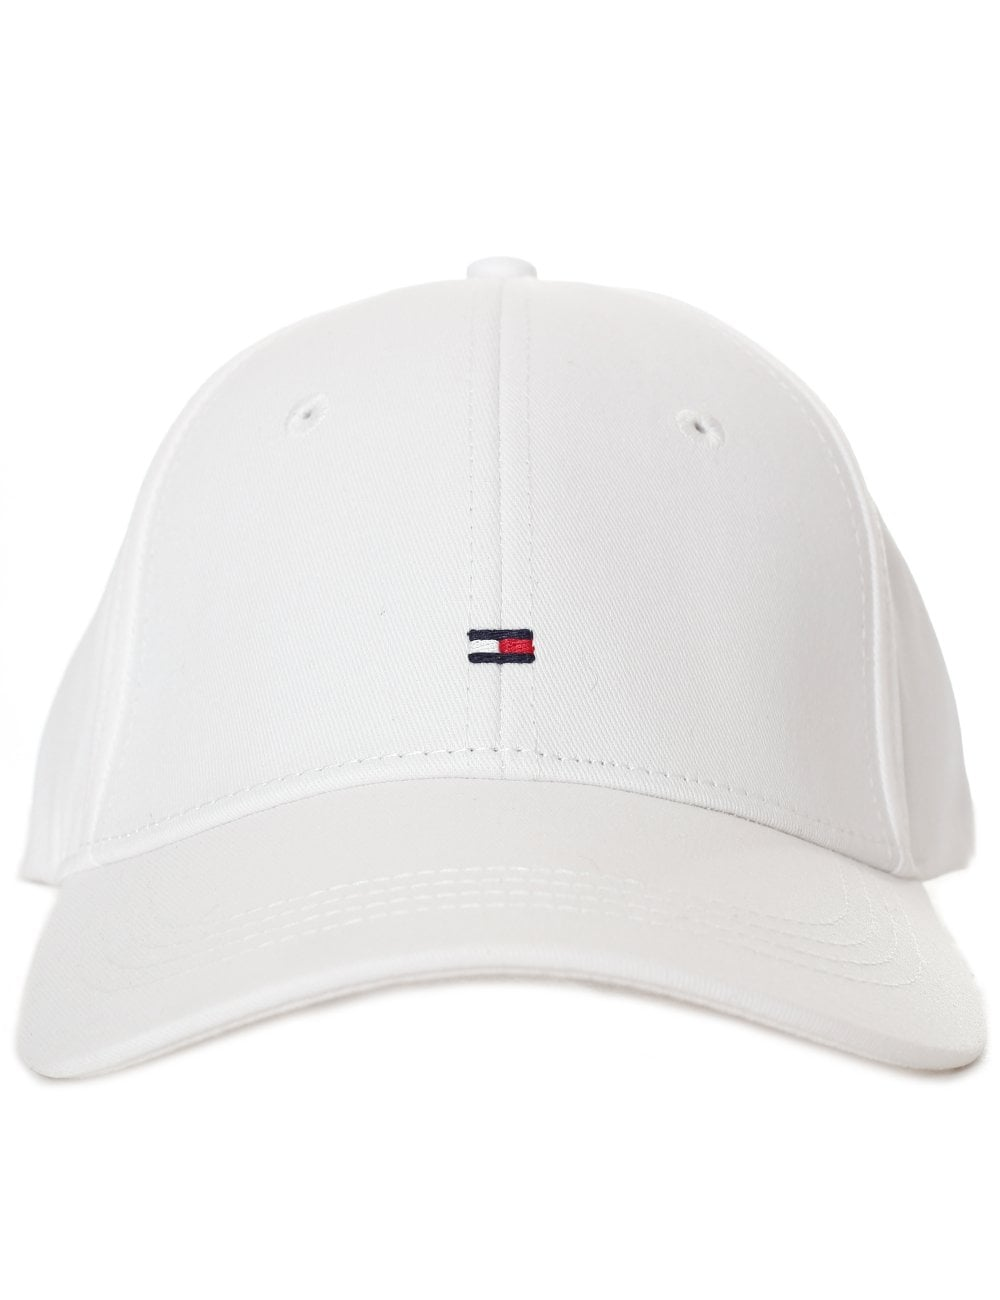 5d4a4627dabf0 Tommy Hilfiger Women s Classic Baseball Cap Bright White